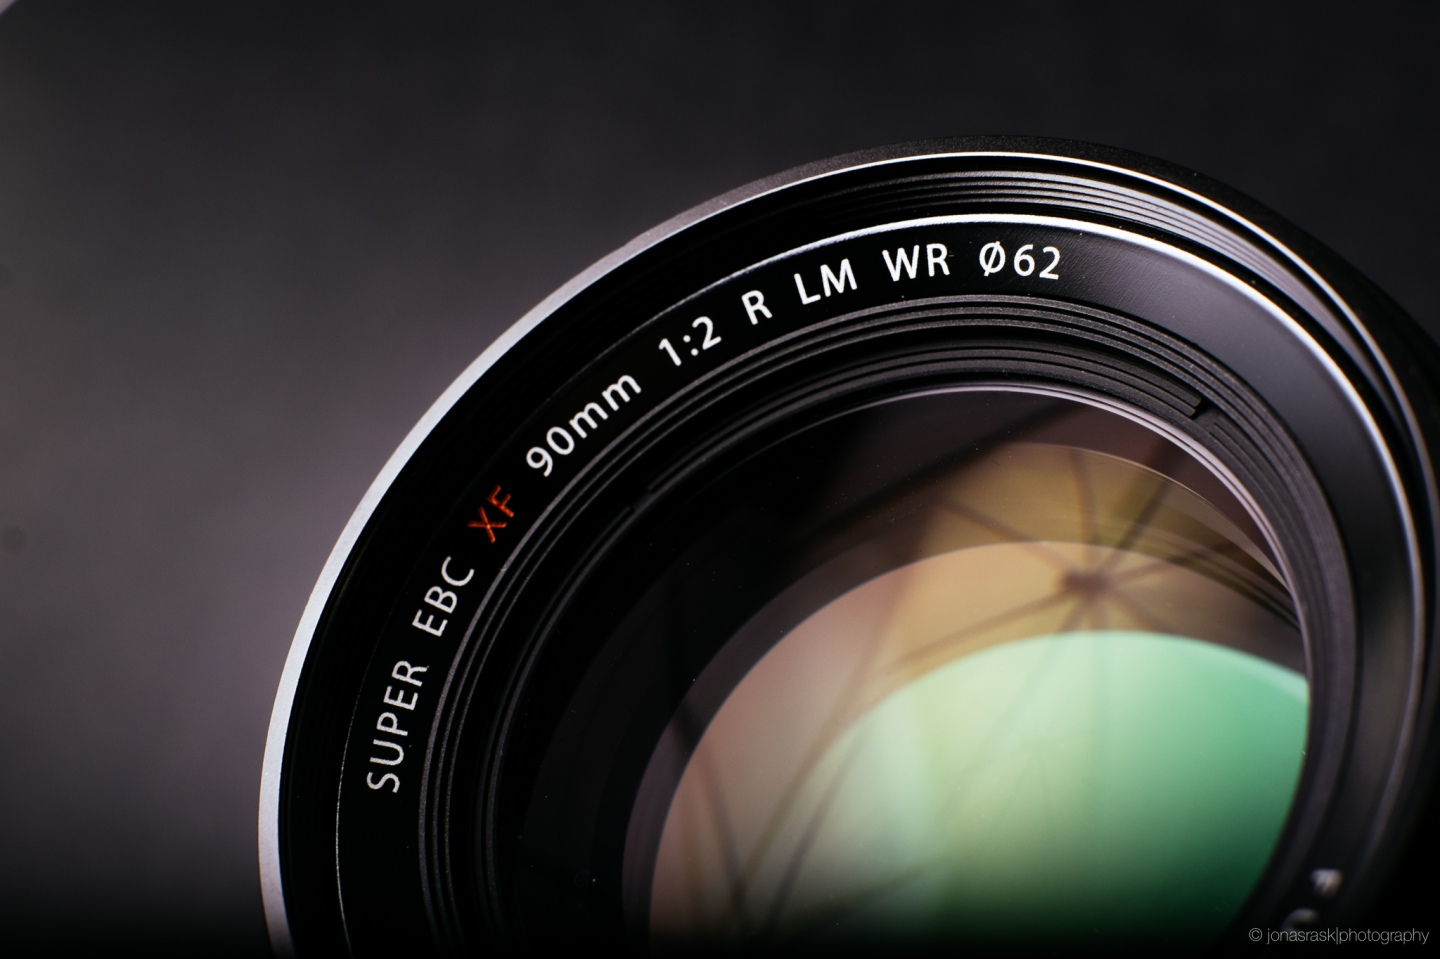 The Fujifilm XF 90mm f/2 review